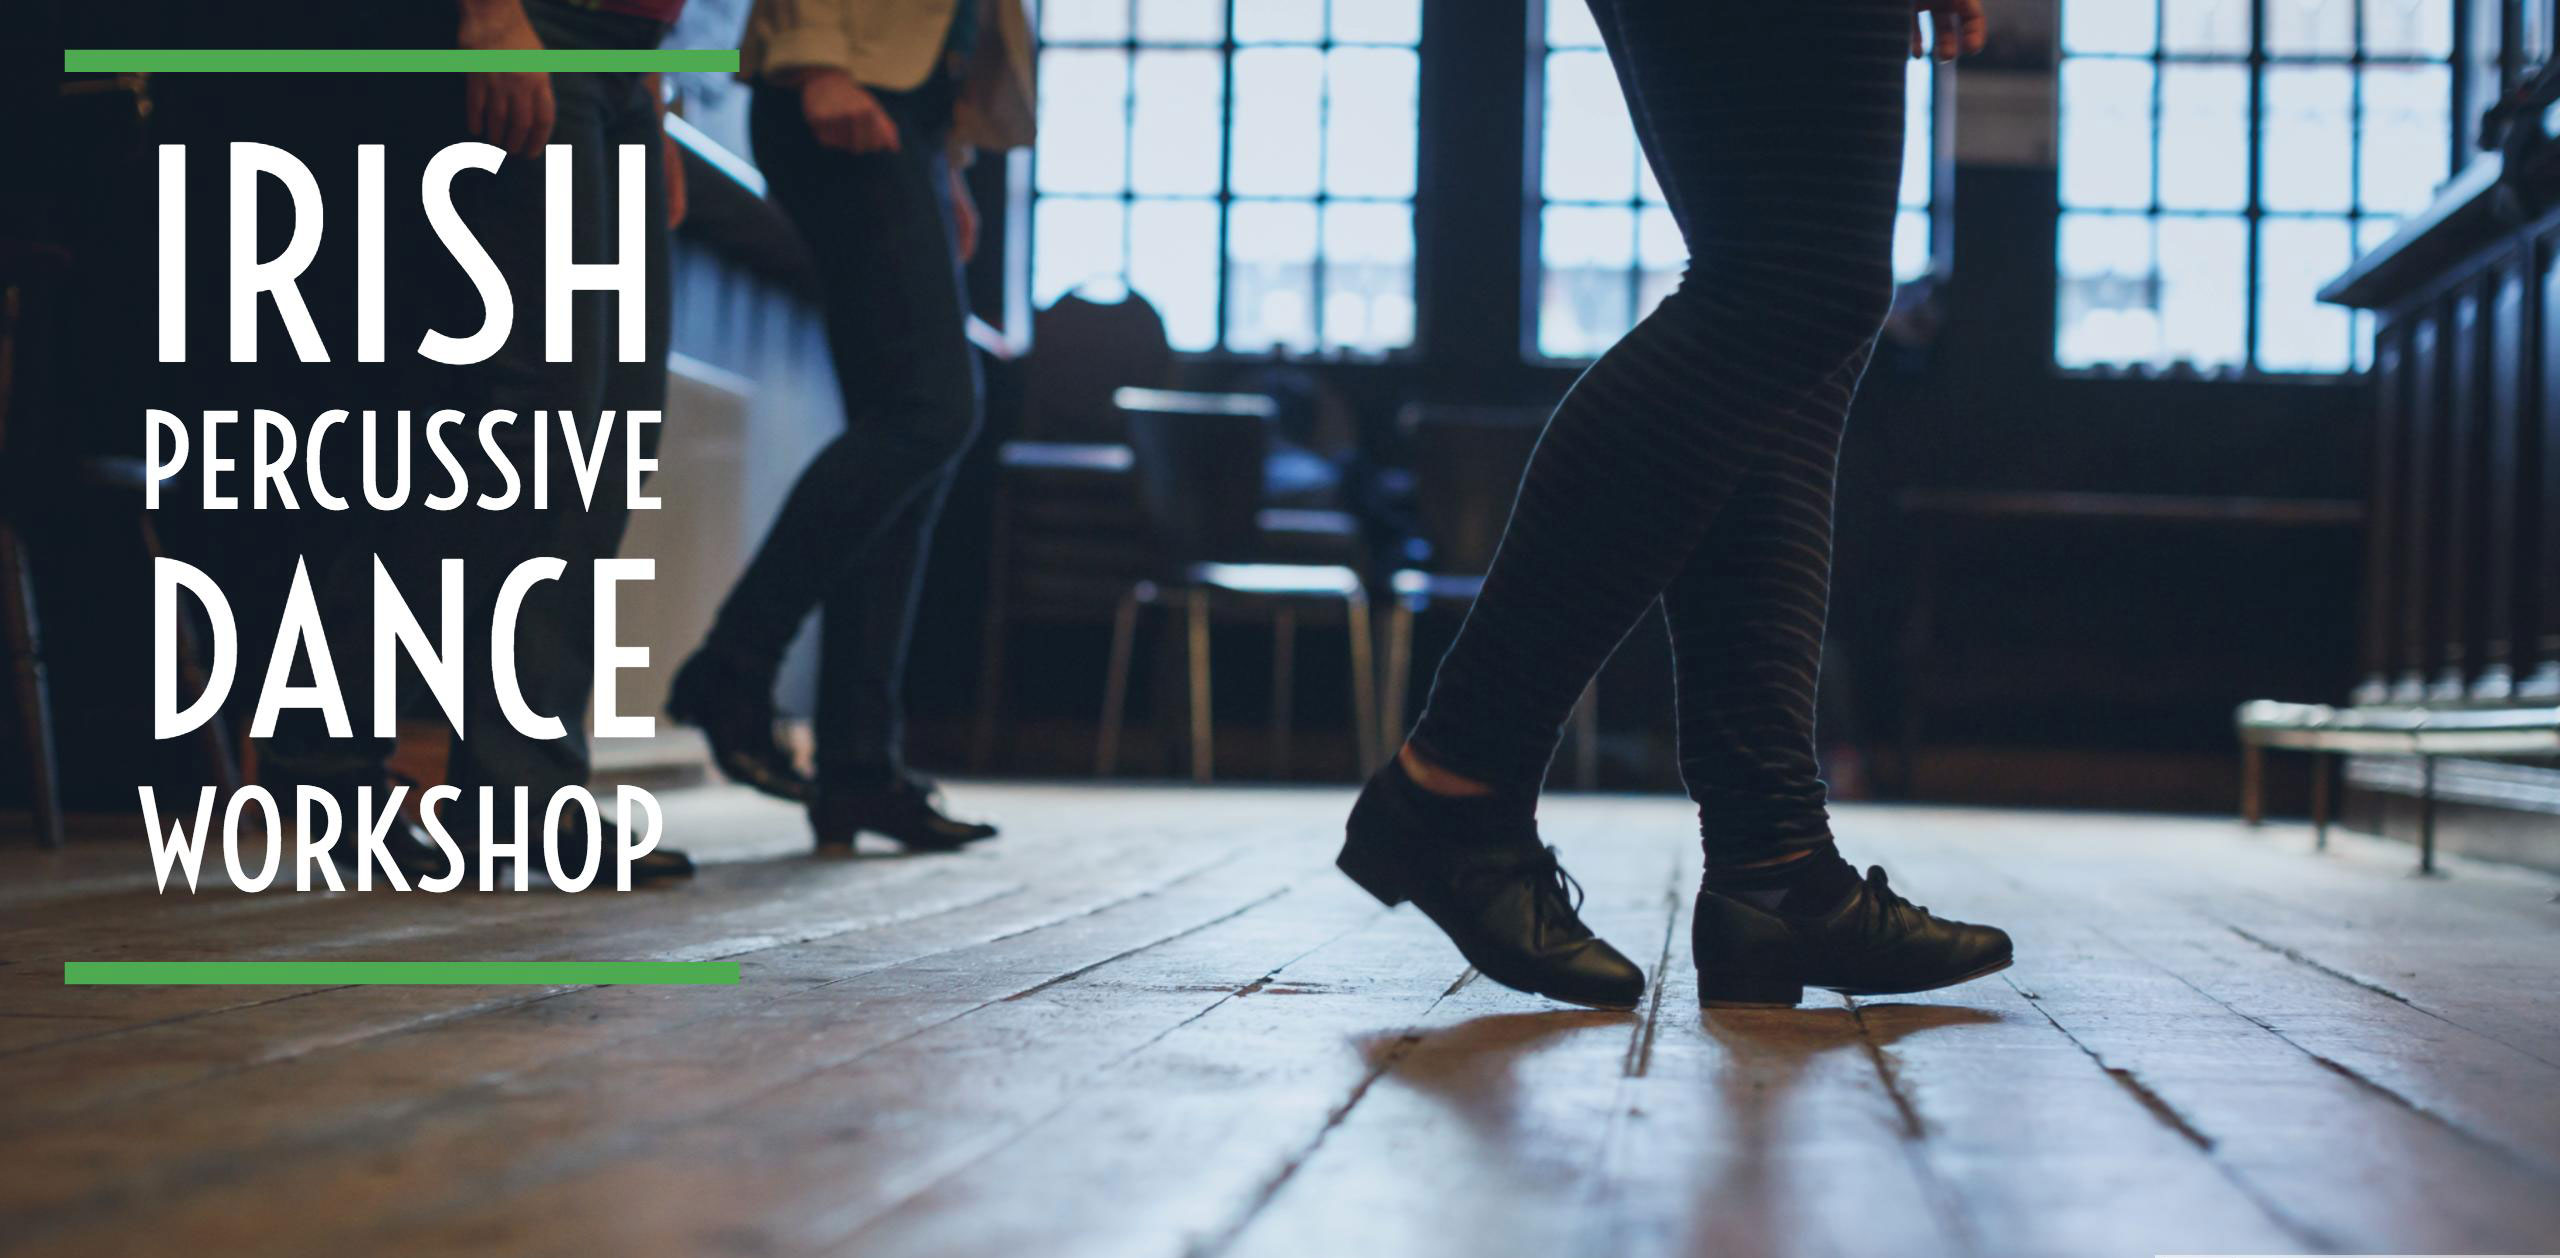 Virtual Irish dance workshop brings dancers together Jan. 16